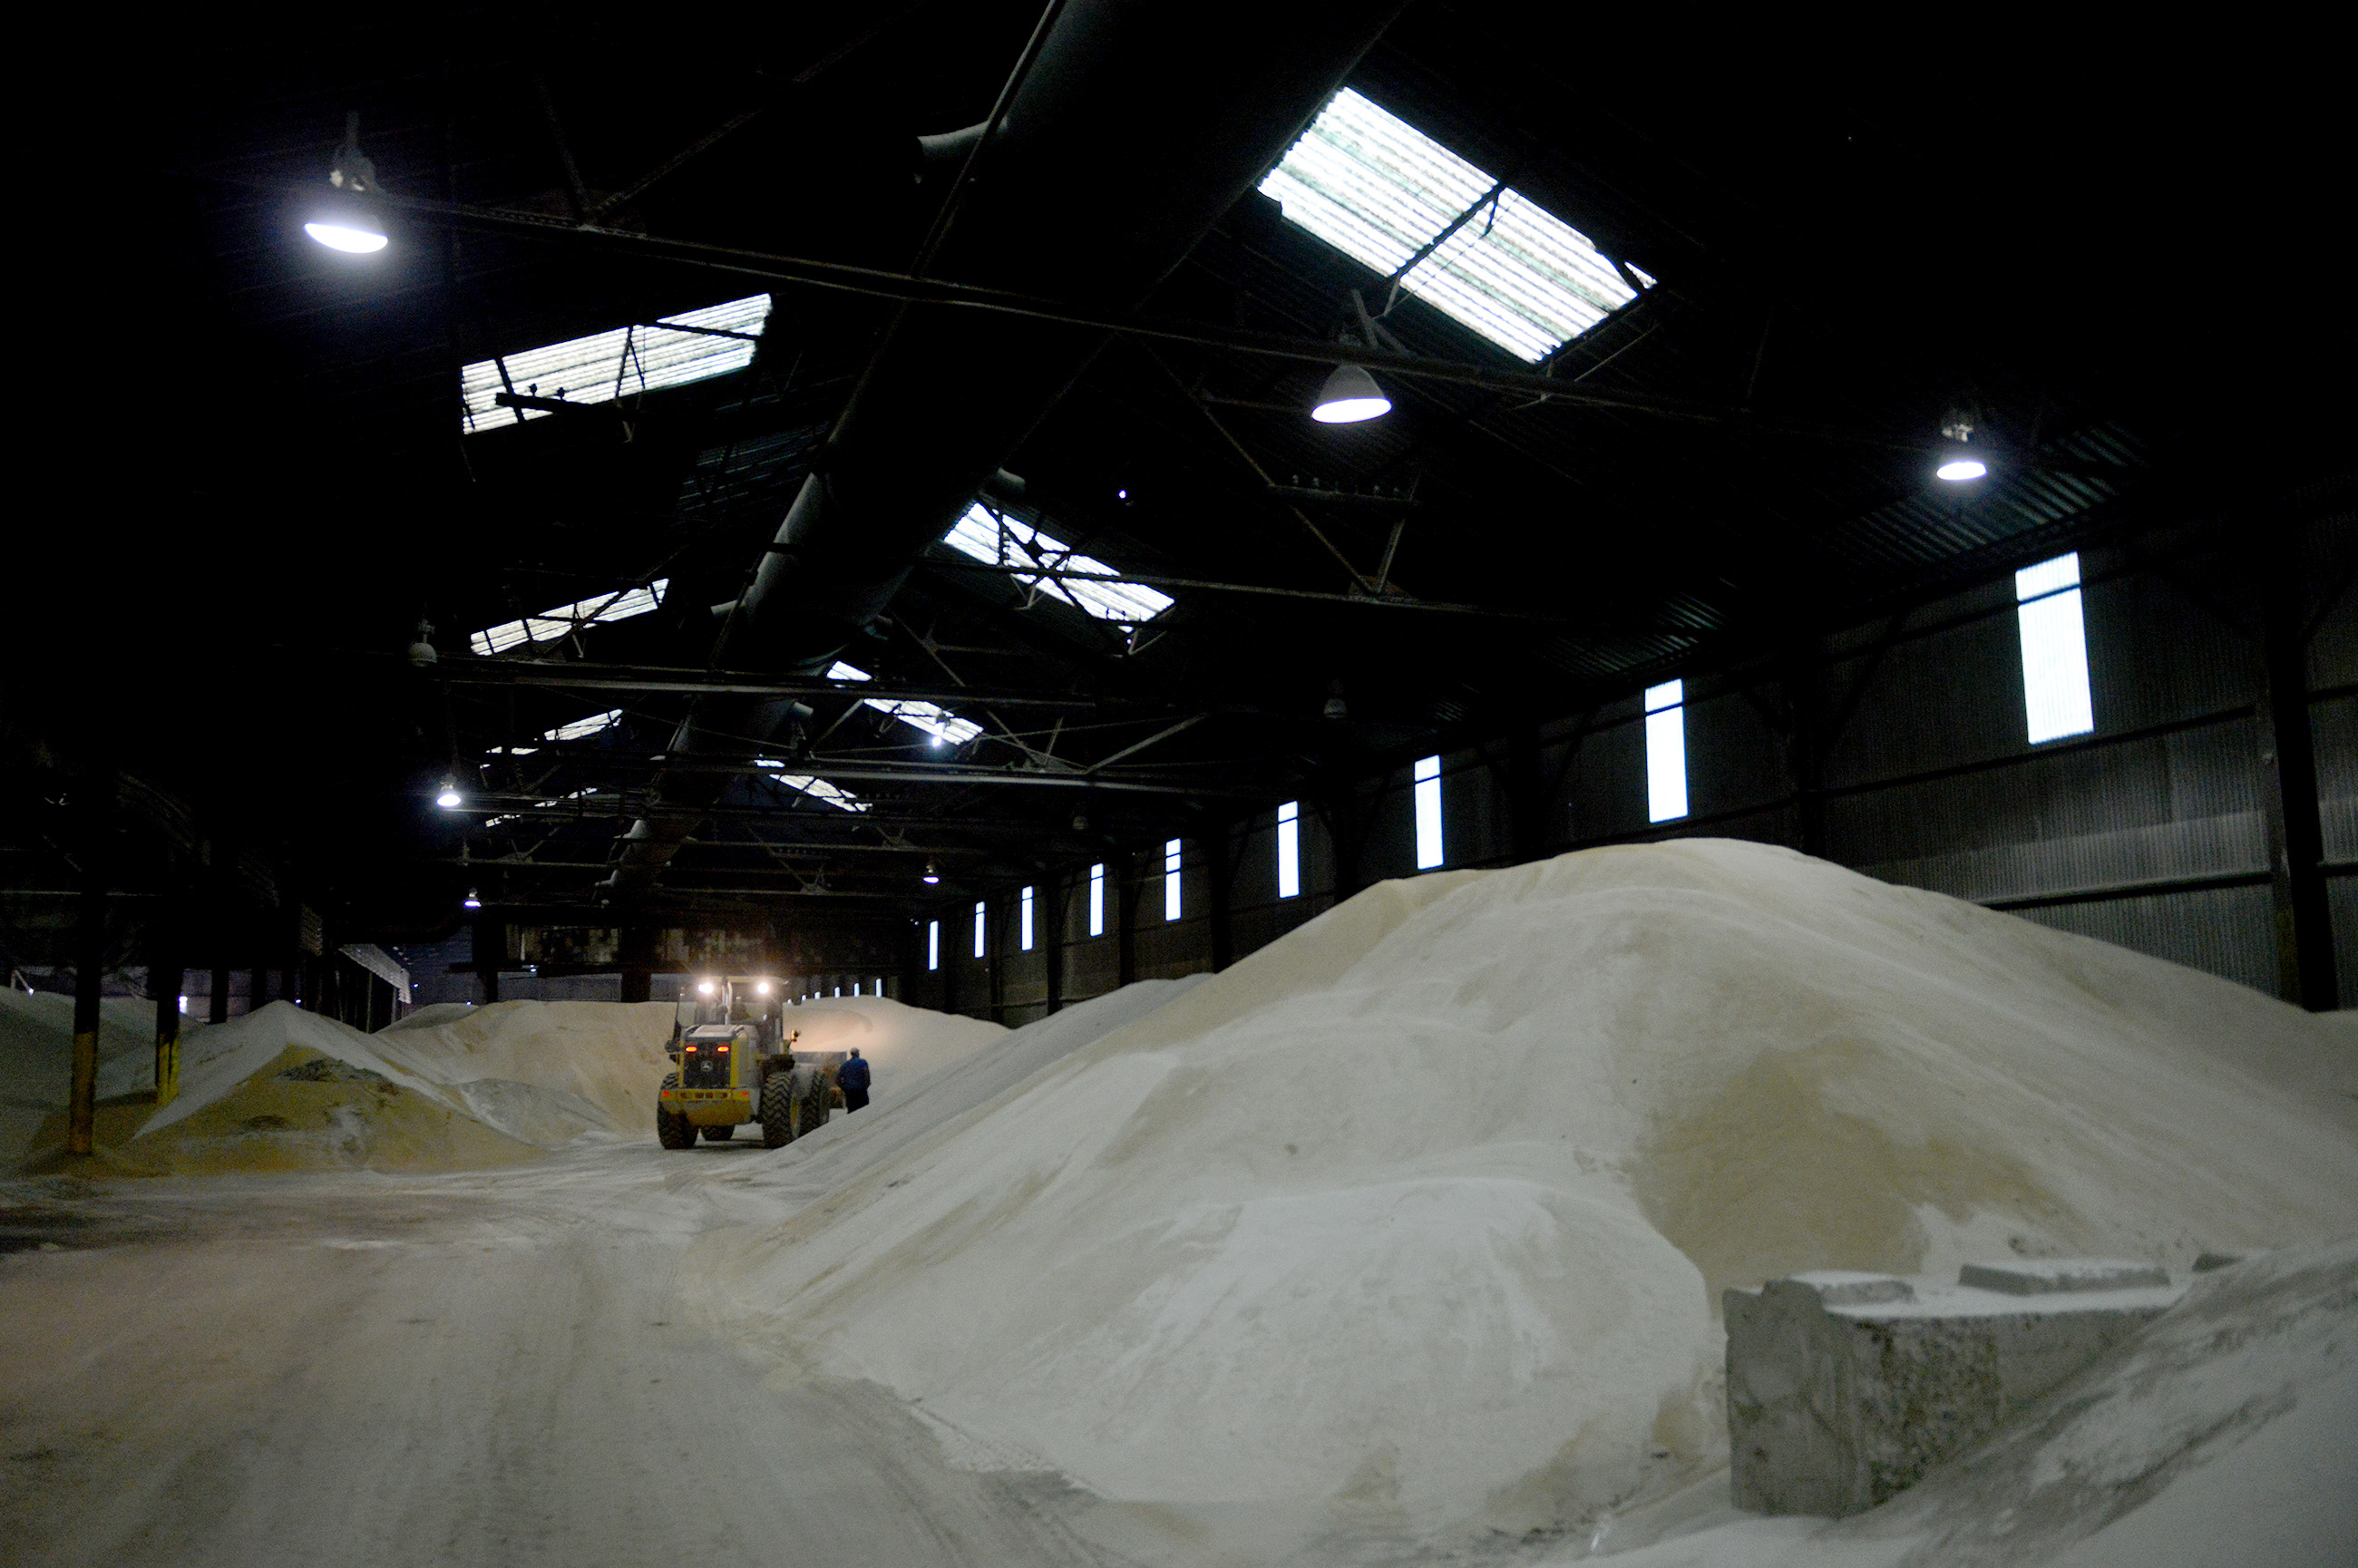 20150320MWHmrieBiz08-7 Michael Henninger/Post-Gazette 20150320 mrie Biz 03/20/2015 Employees survey and move frack sand stored in warehouse facilities at McKees Rocks Industrial Enterprises (MRIE). Two more 30,000-square-foot buildings are slated to open this year to store frack sand, according to Jim Lind, an owner at MRIE.